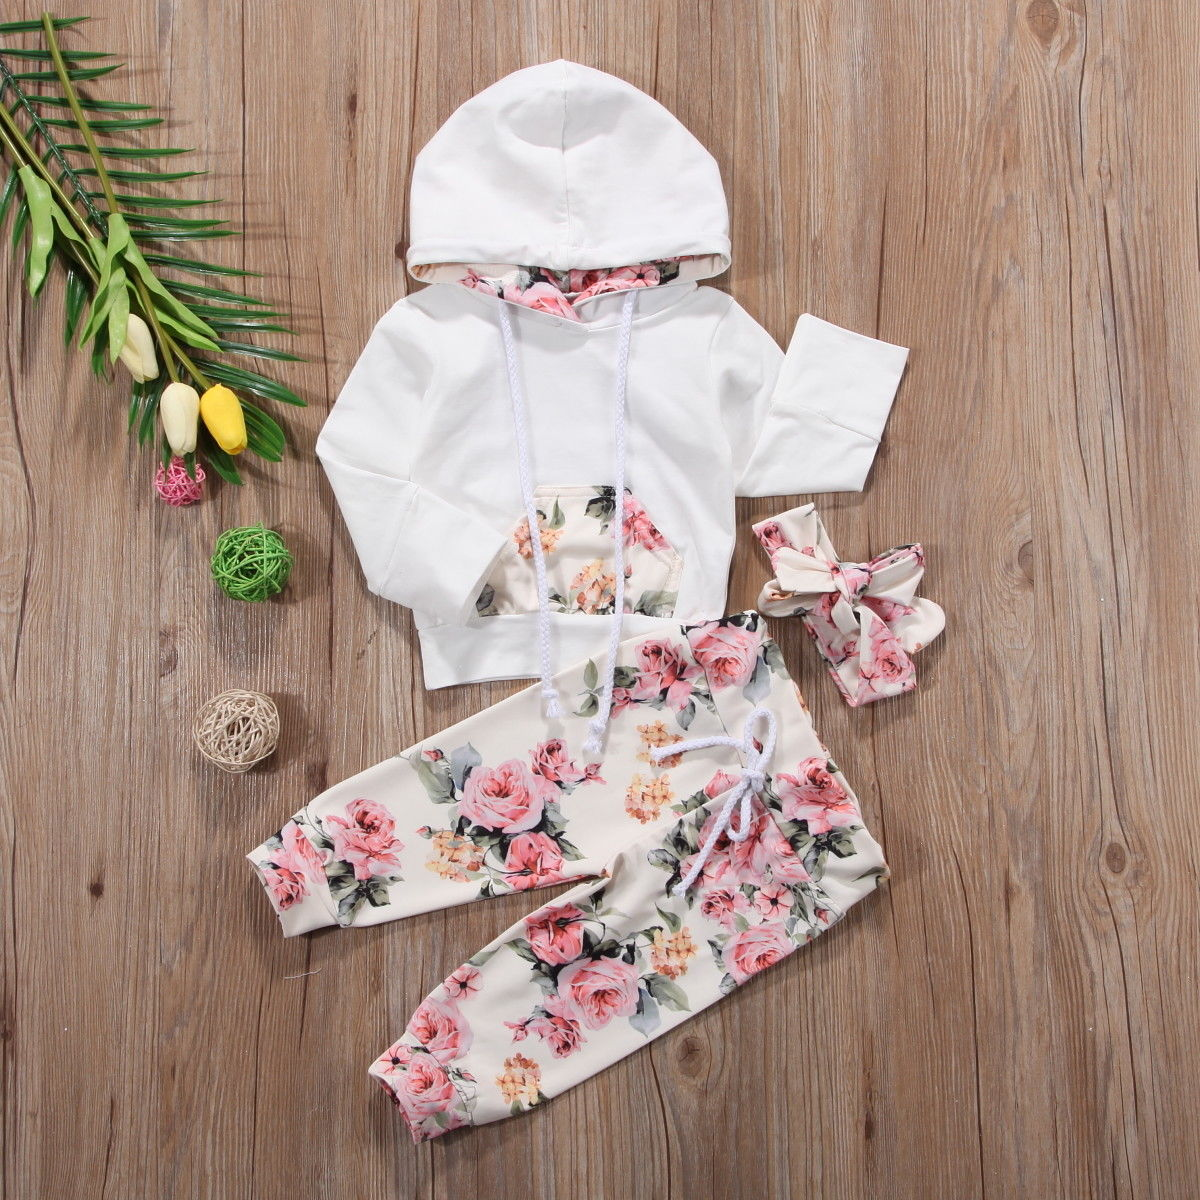 3 Pieces Infant Toddler Clothes Set Baby Girls Floral Hooded Tops+Leggings Pants With Headband 3Pcs Outfits Tracksuit